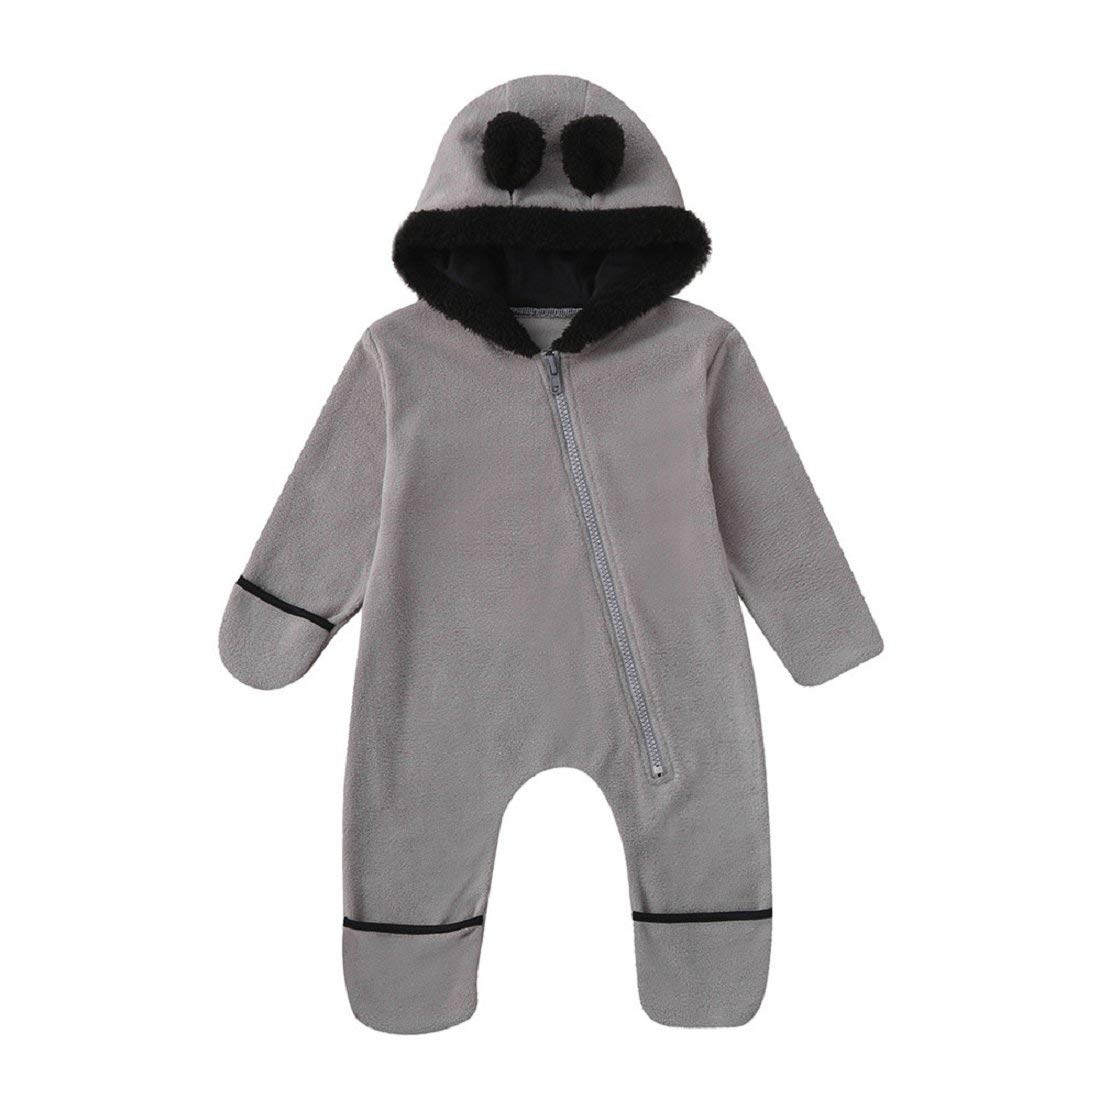 Infant Pyjamas Winter Solid Cartoon Ears Dungarees Outfit YEBIRAL Fleece Baby Hooded Romper Jumpsuit